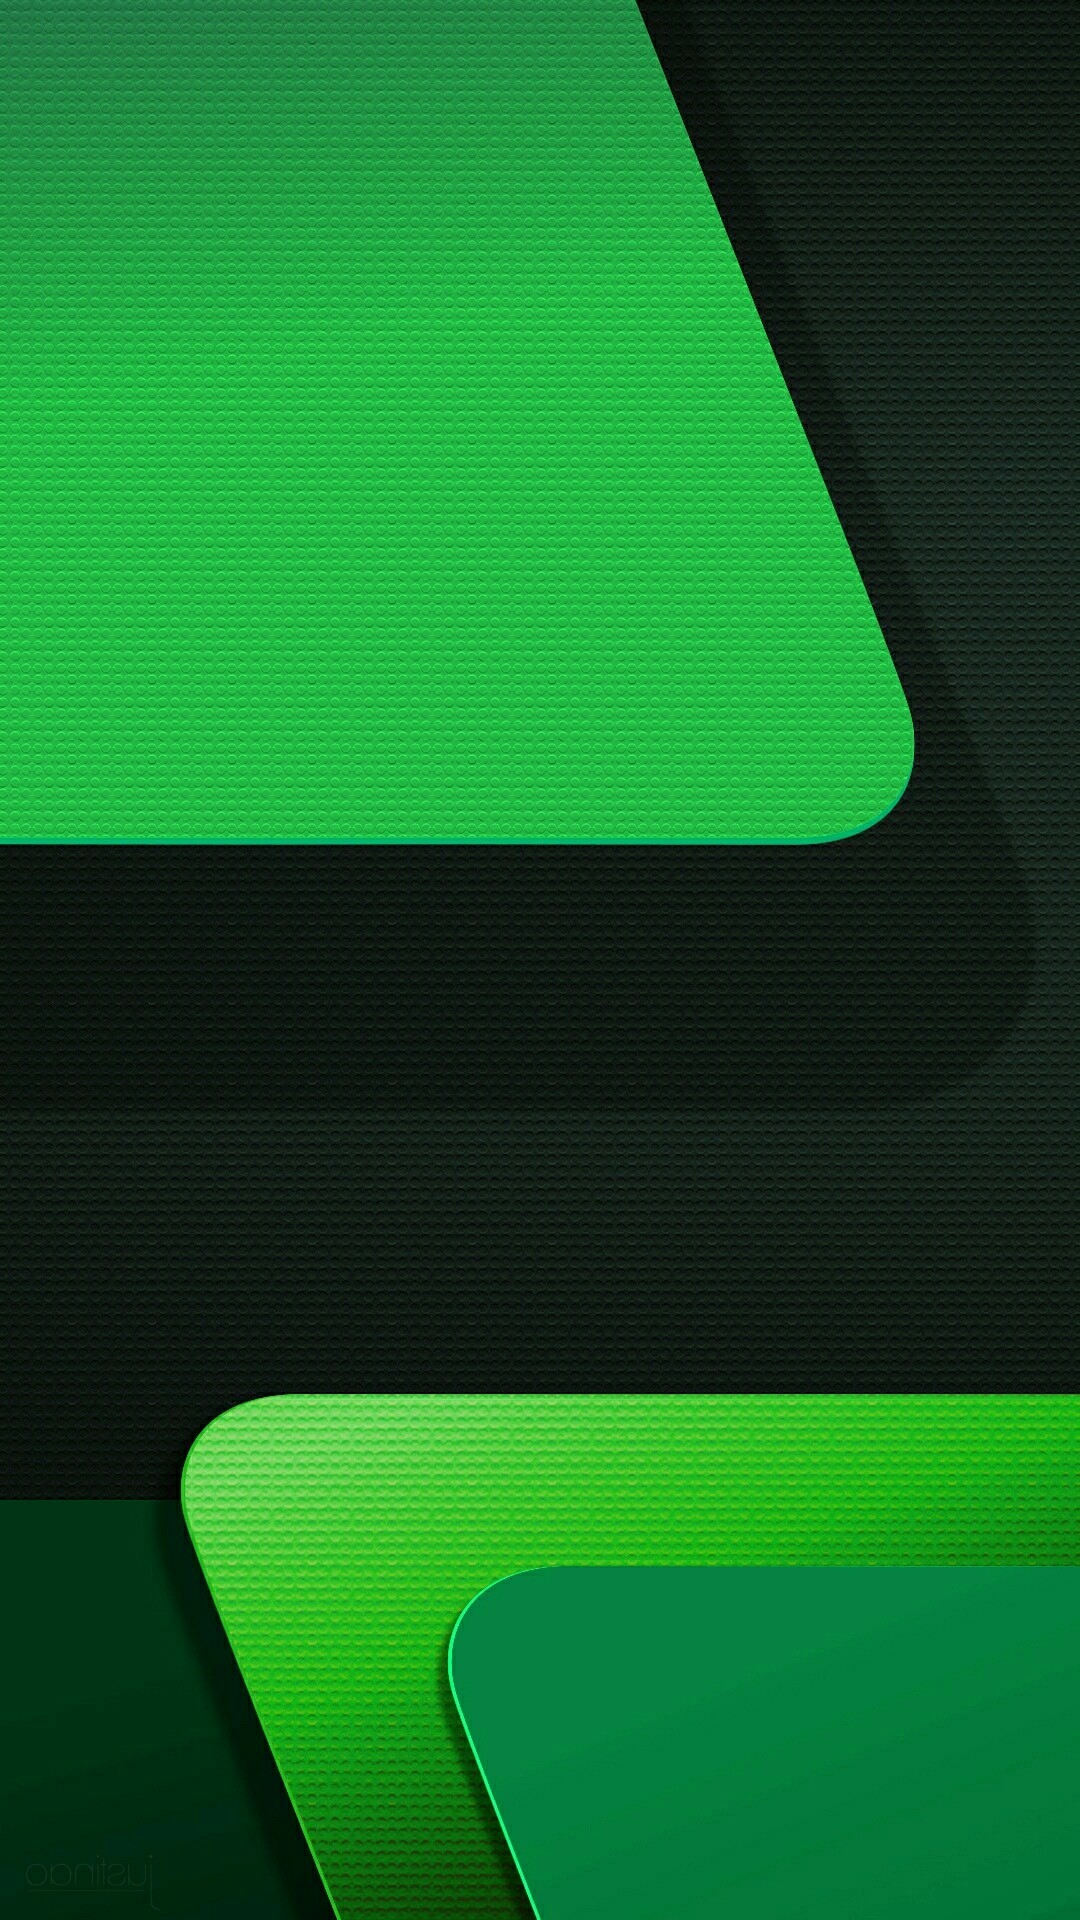 Red and Green Wallpaper (74+ images)